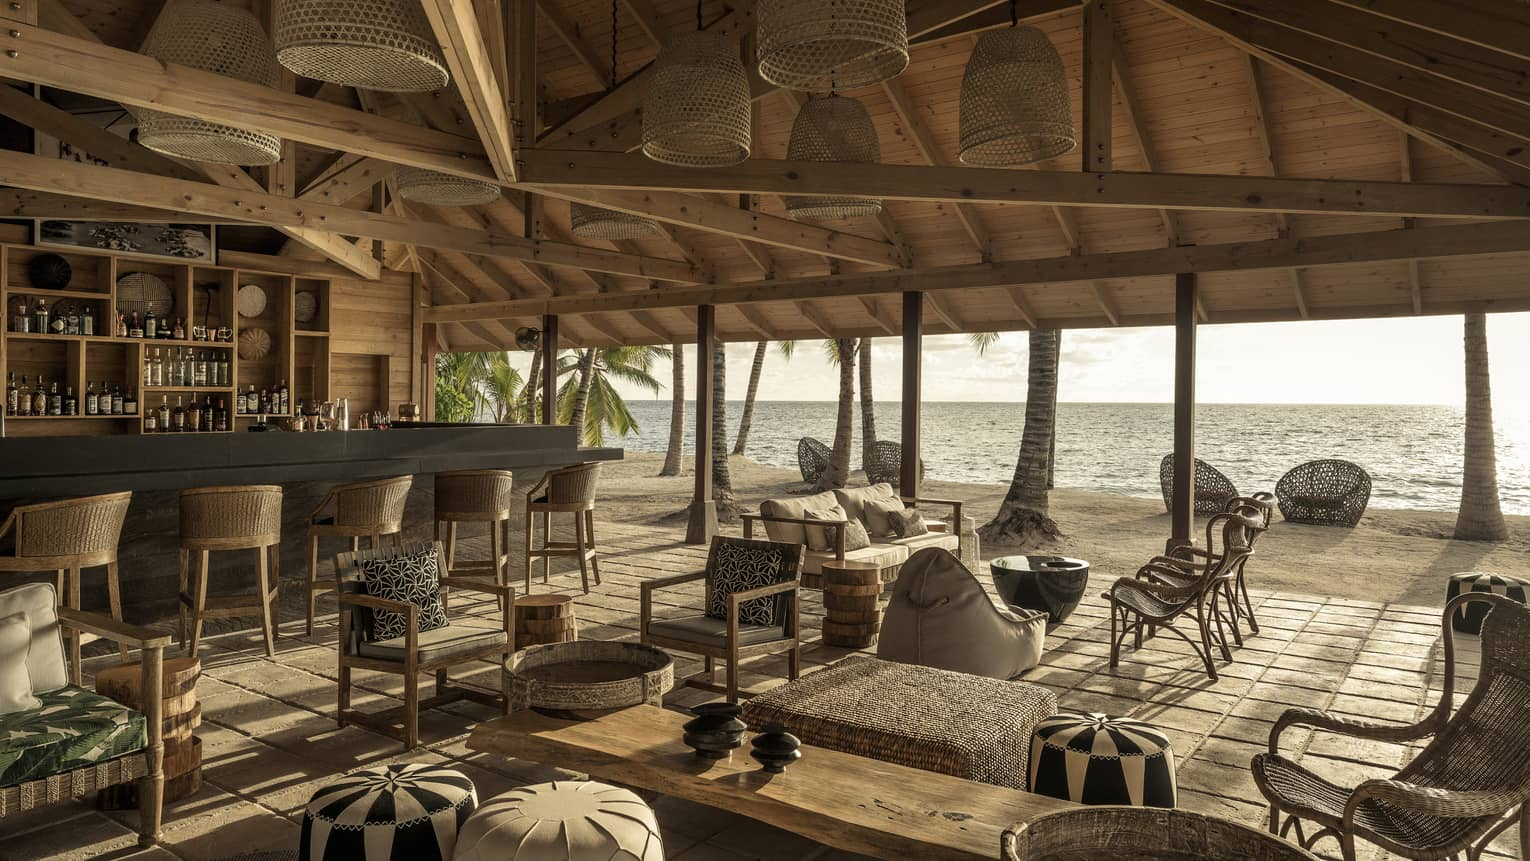 Bar with bar stools and lounge with grouped seating under vaulted wooden ceiling with open-air view of beach and ocean